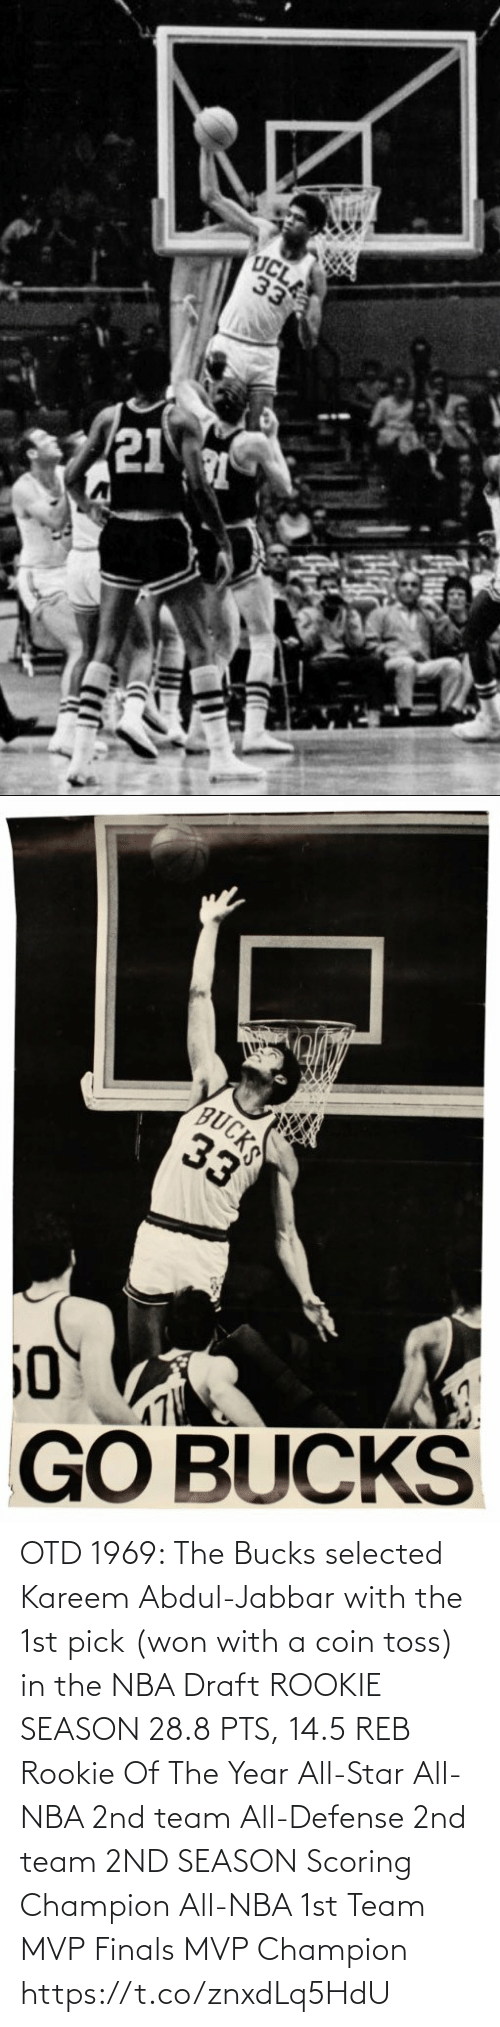 NBA: OTD 1969: The Bucks selected Kareem Abdul-Jabbar with the 1st pick (won with a coin toss) in the NBA Draft   ROOKIE SEASON 28.8 PTS, 14.5 REB Rookie Of The Year All-Star All-NBA 2nd team All-Defense 2nd team  2ND SEASON Scoring Champion All-NBA 1st Team MVP Finals MVP Champion https://t.co/znxdLq5HdU